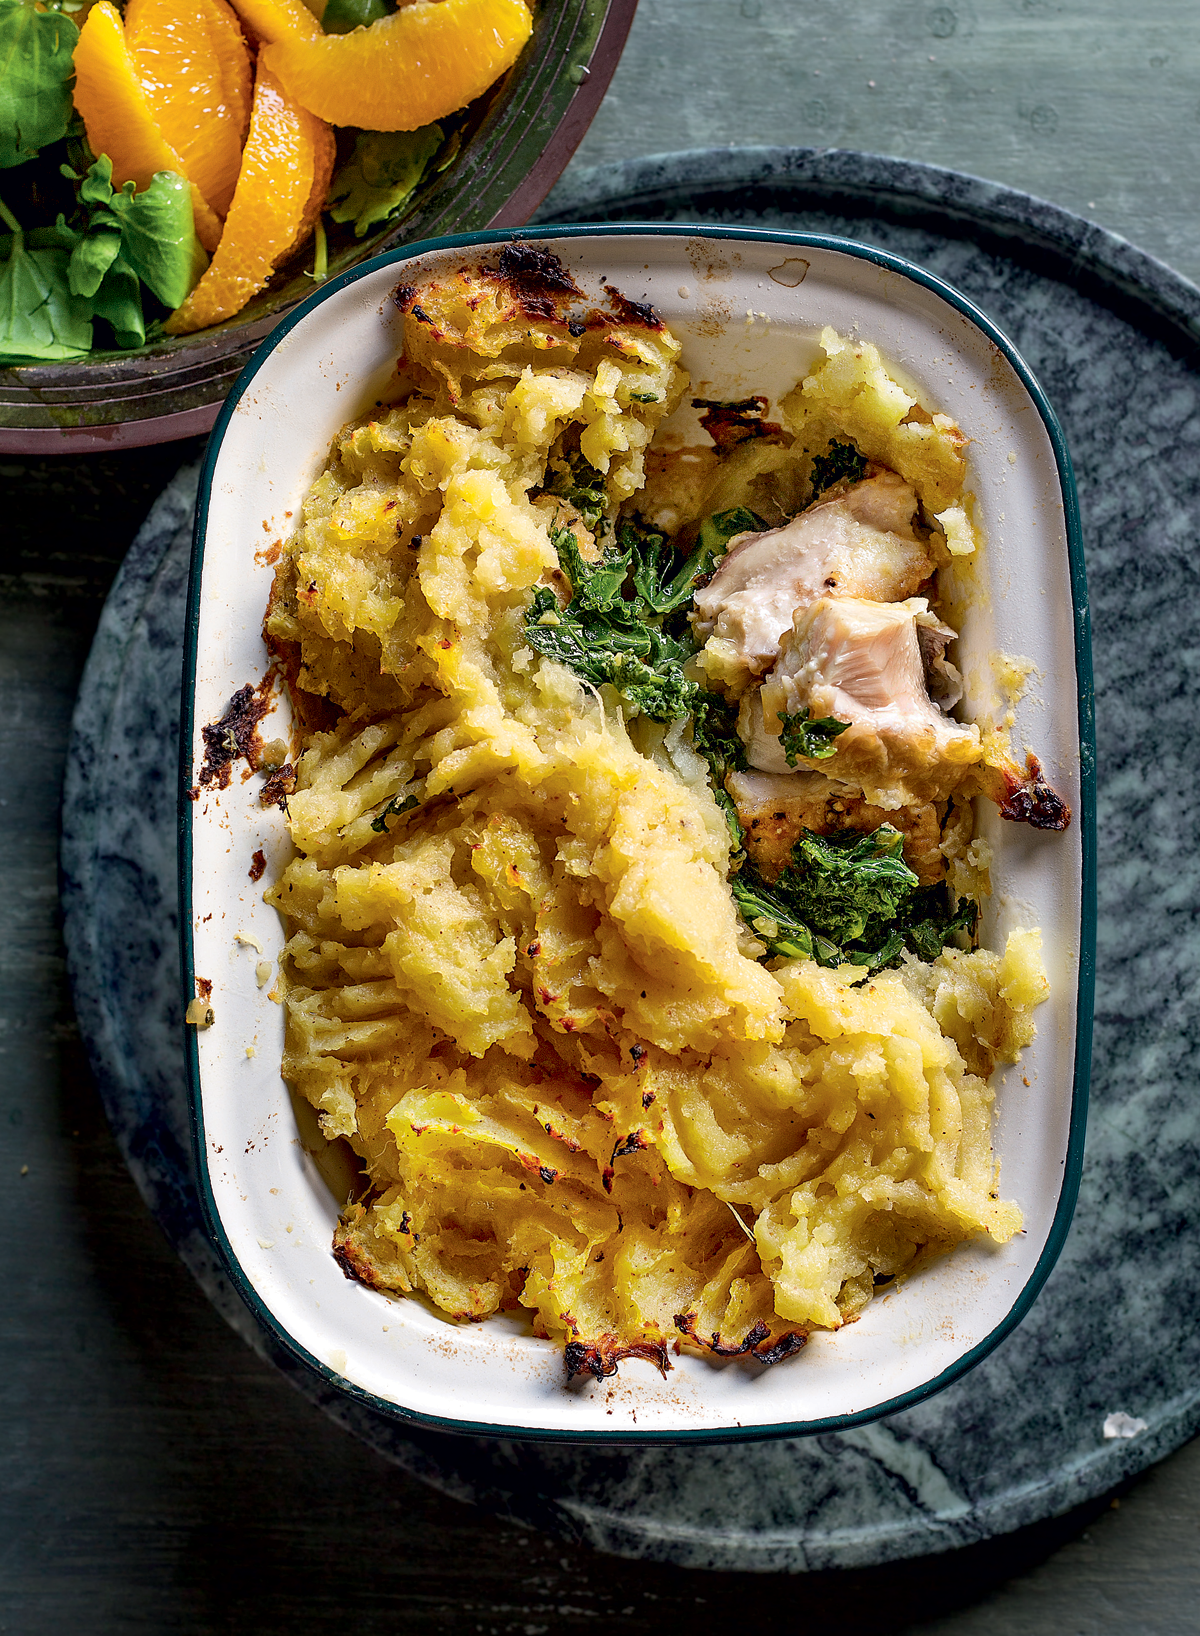 Fish-and-kale pie with sweet potato topping recipe